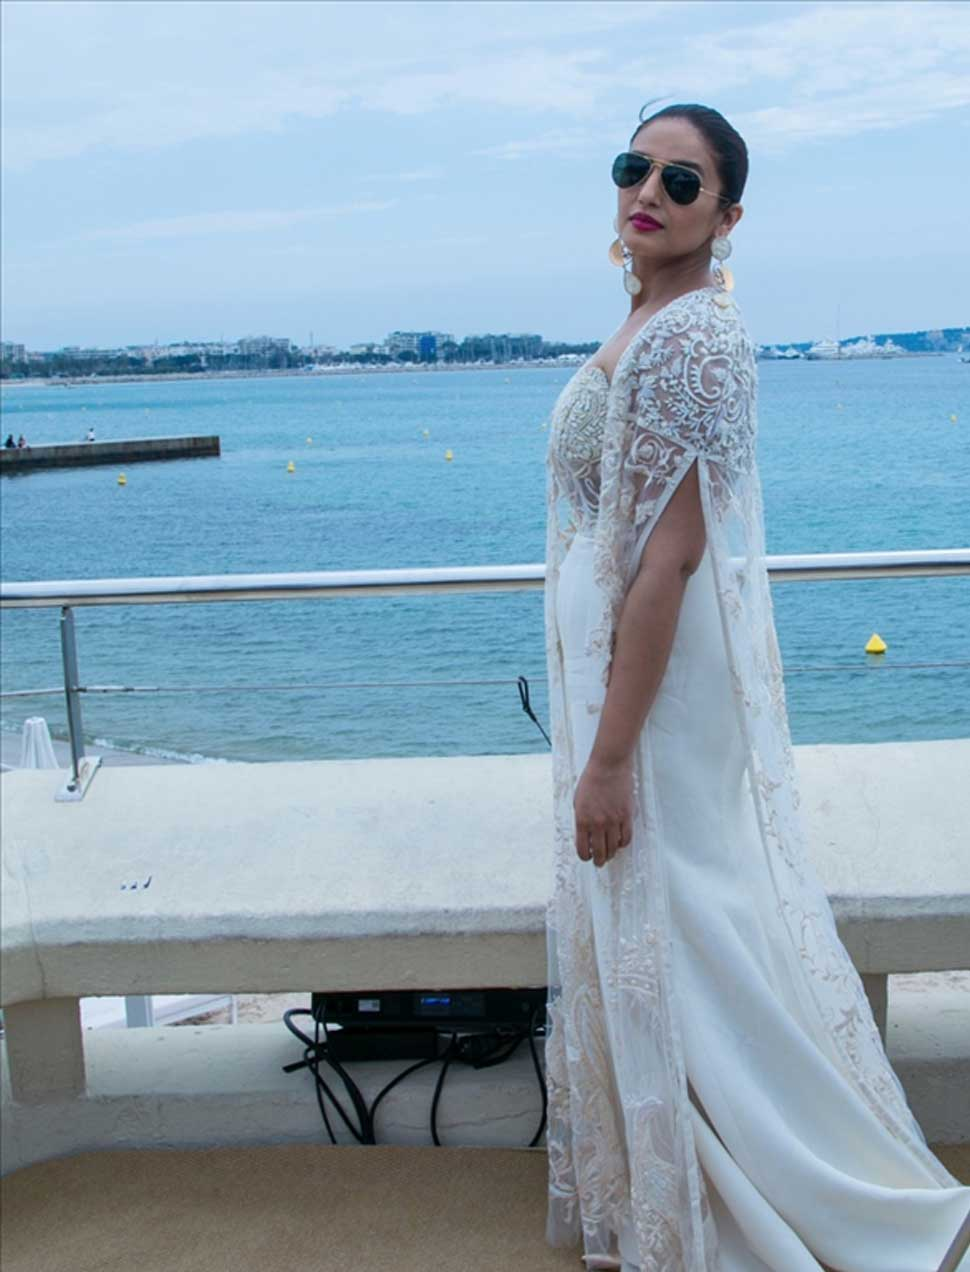 Huma Qureshi begins her journey at Cannes Film Festival, looking beautiful in white